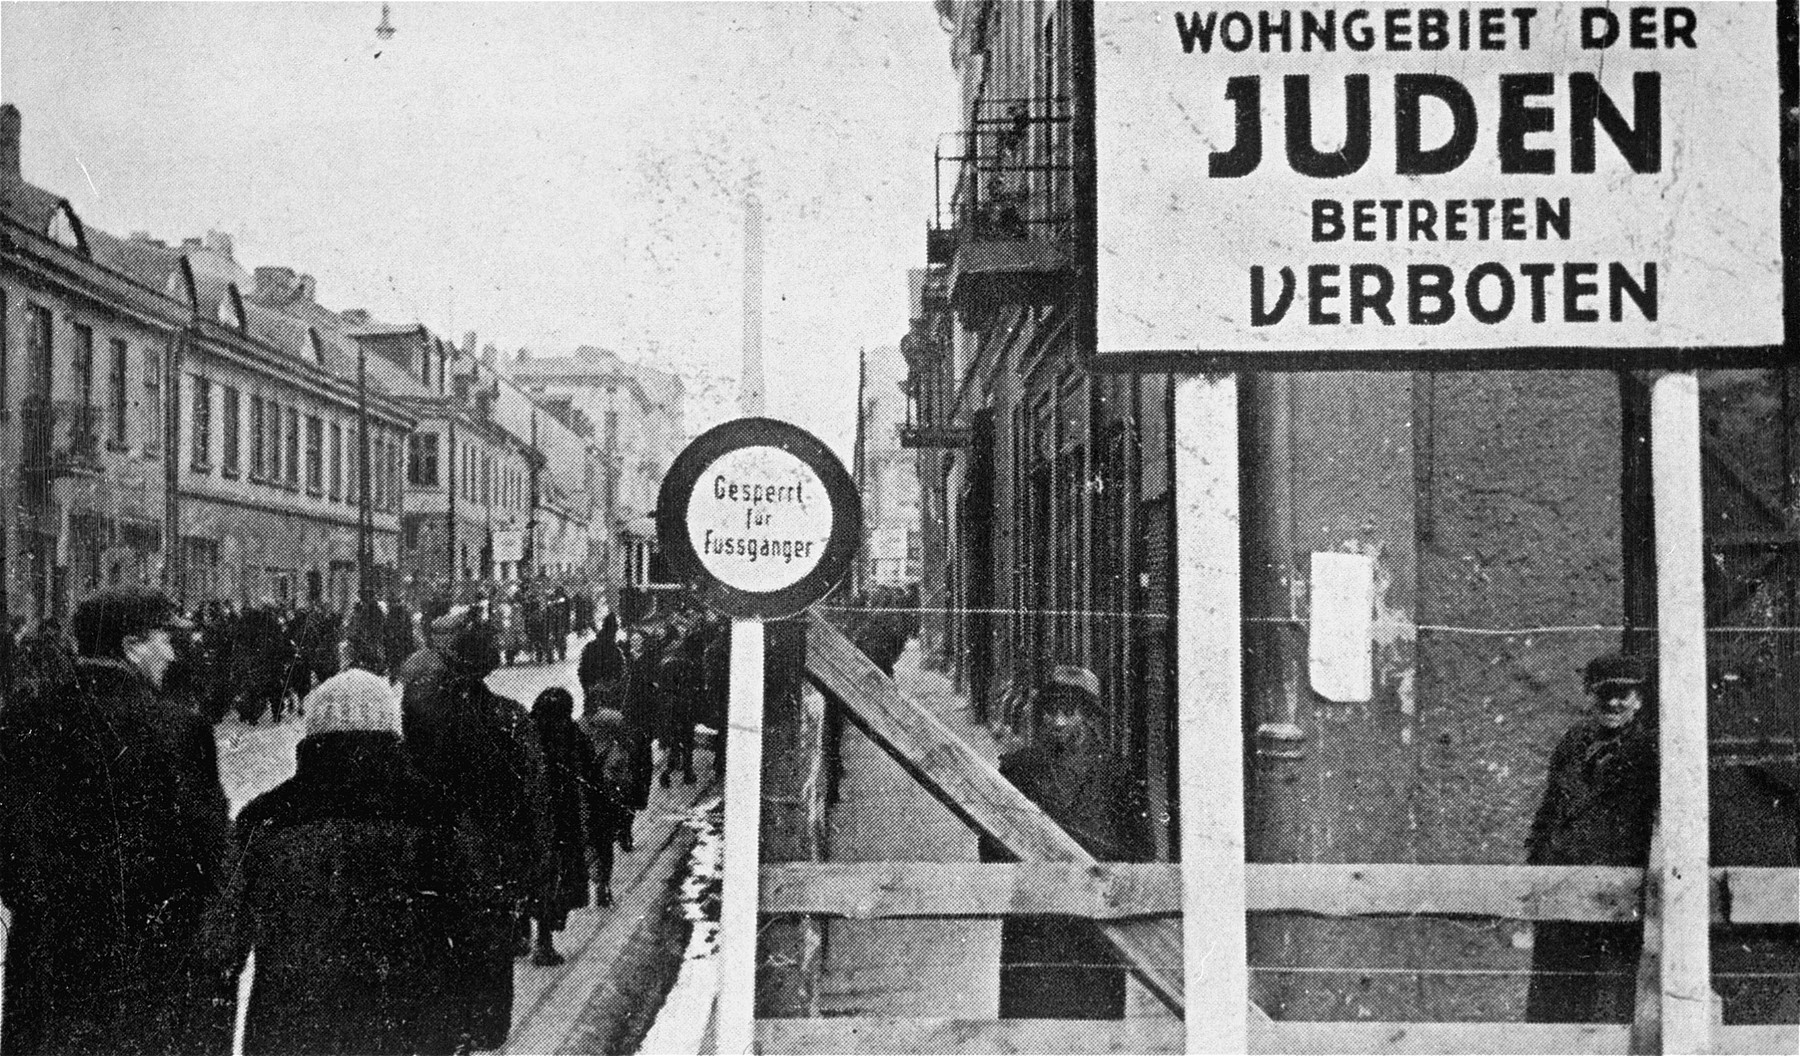 Postcard from the Lodz ghetto showing the entrance and a sign forbidding entrance to non-Jews to the ghetto.